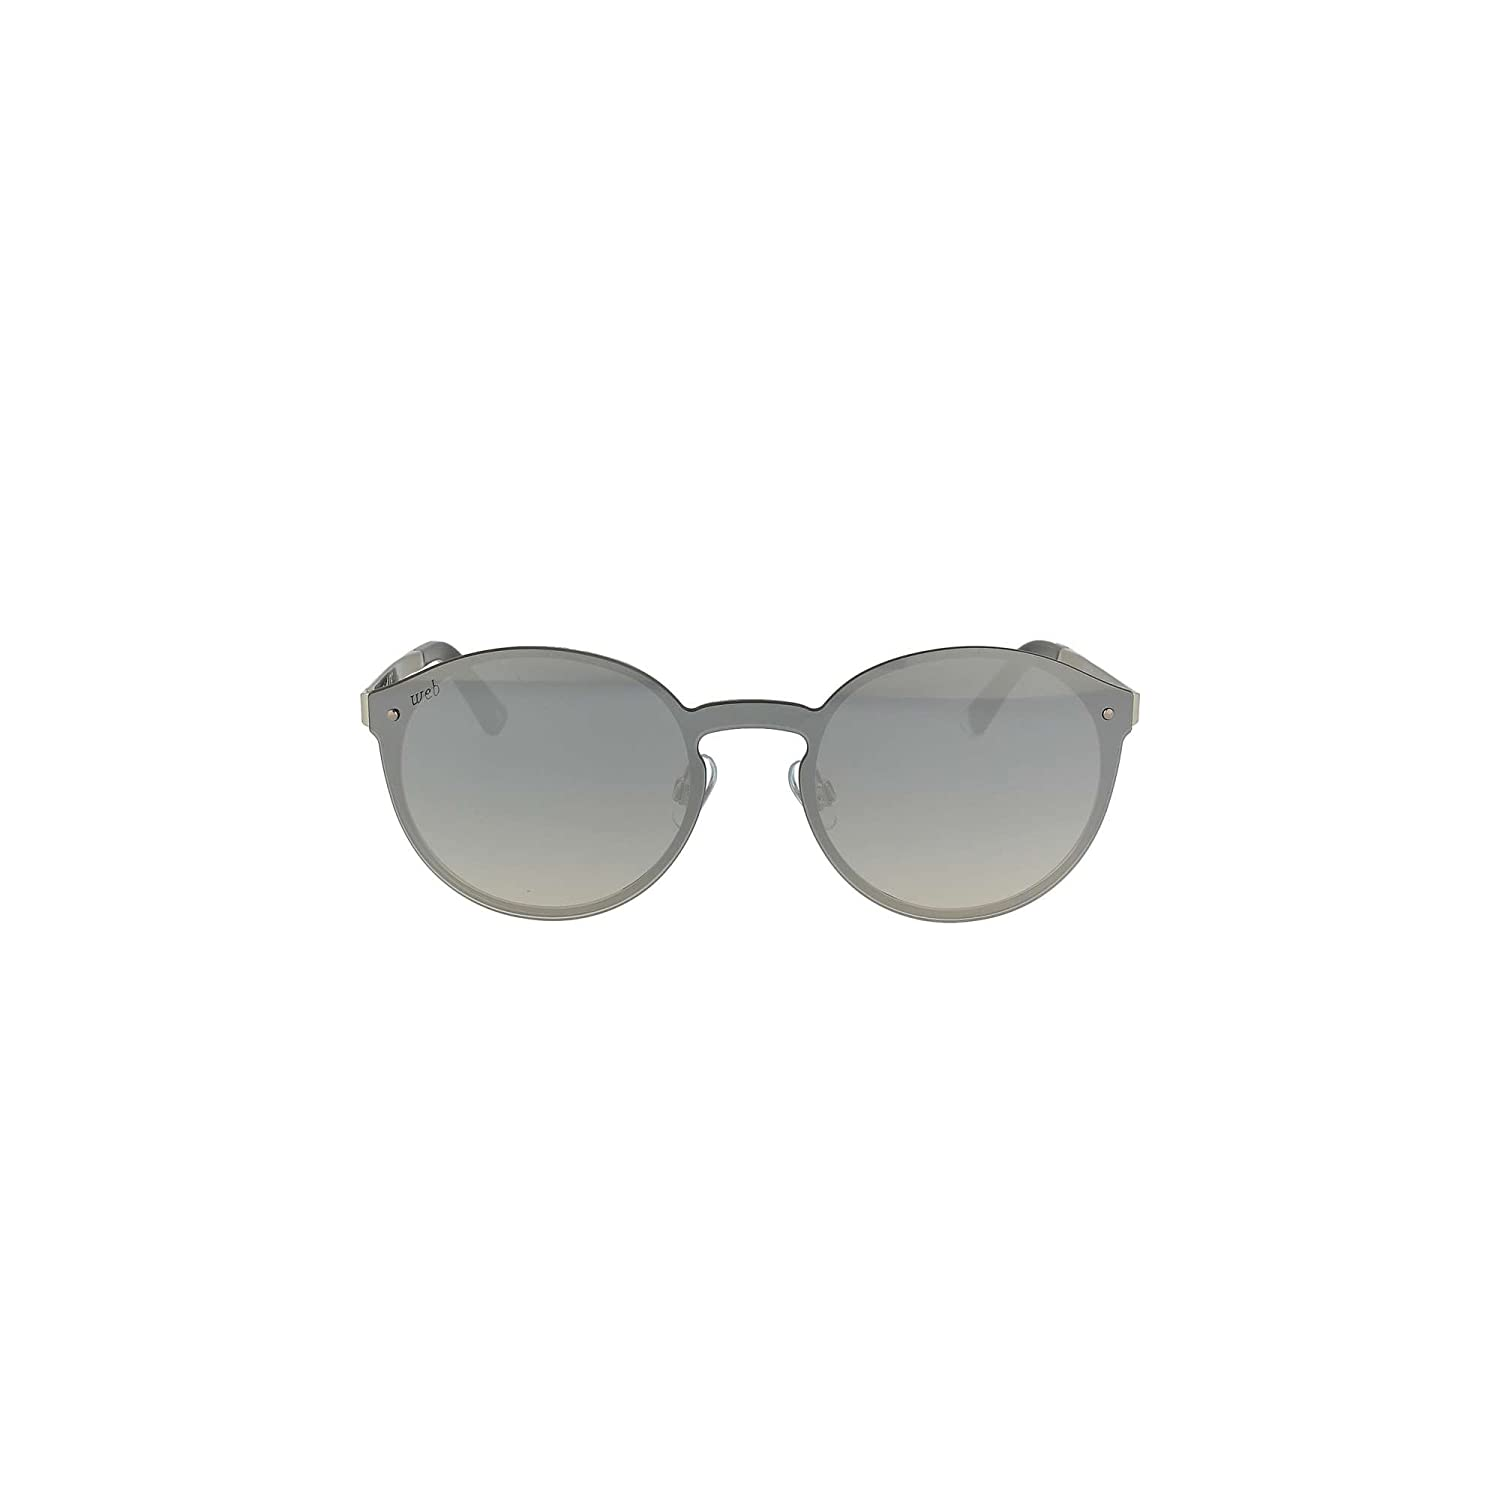 Web WE0203 Gafas de sol Unisex